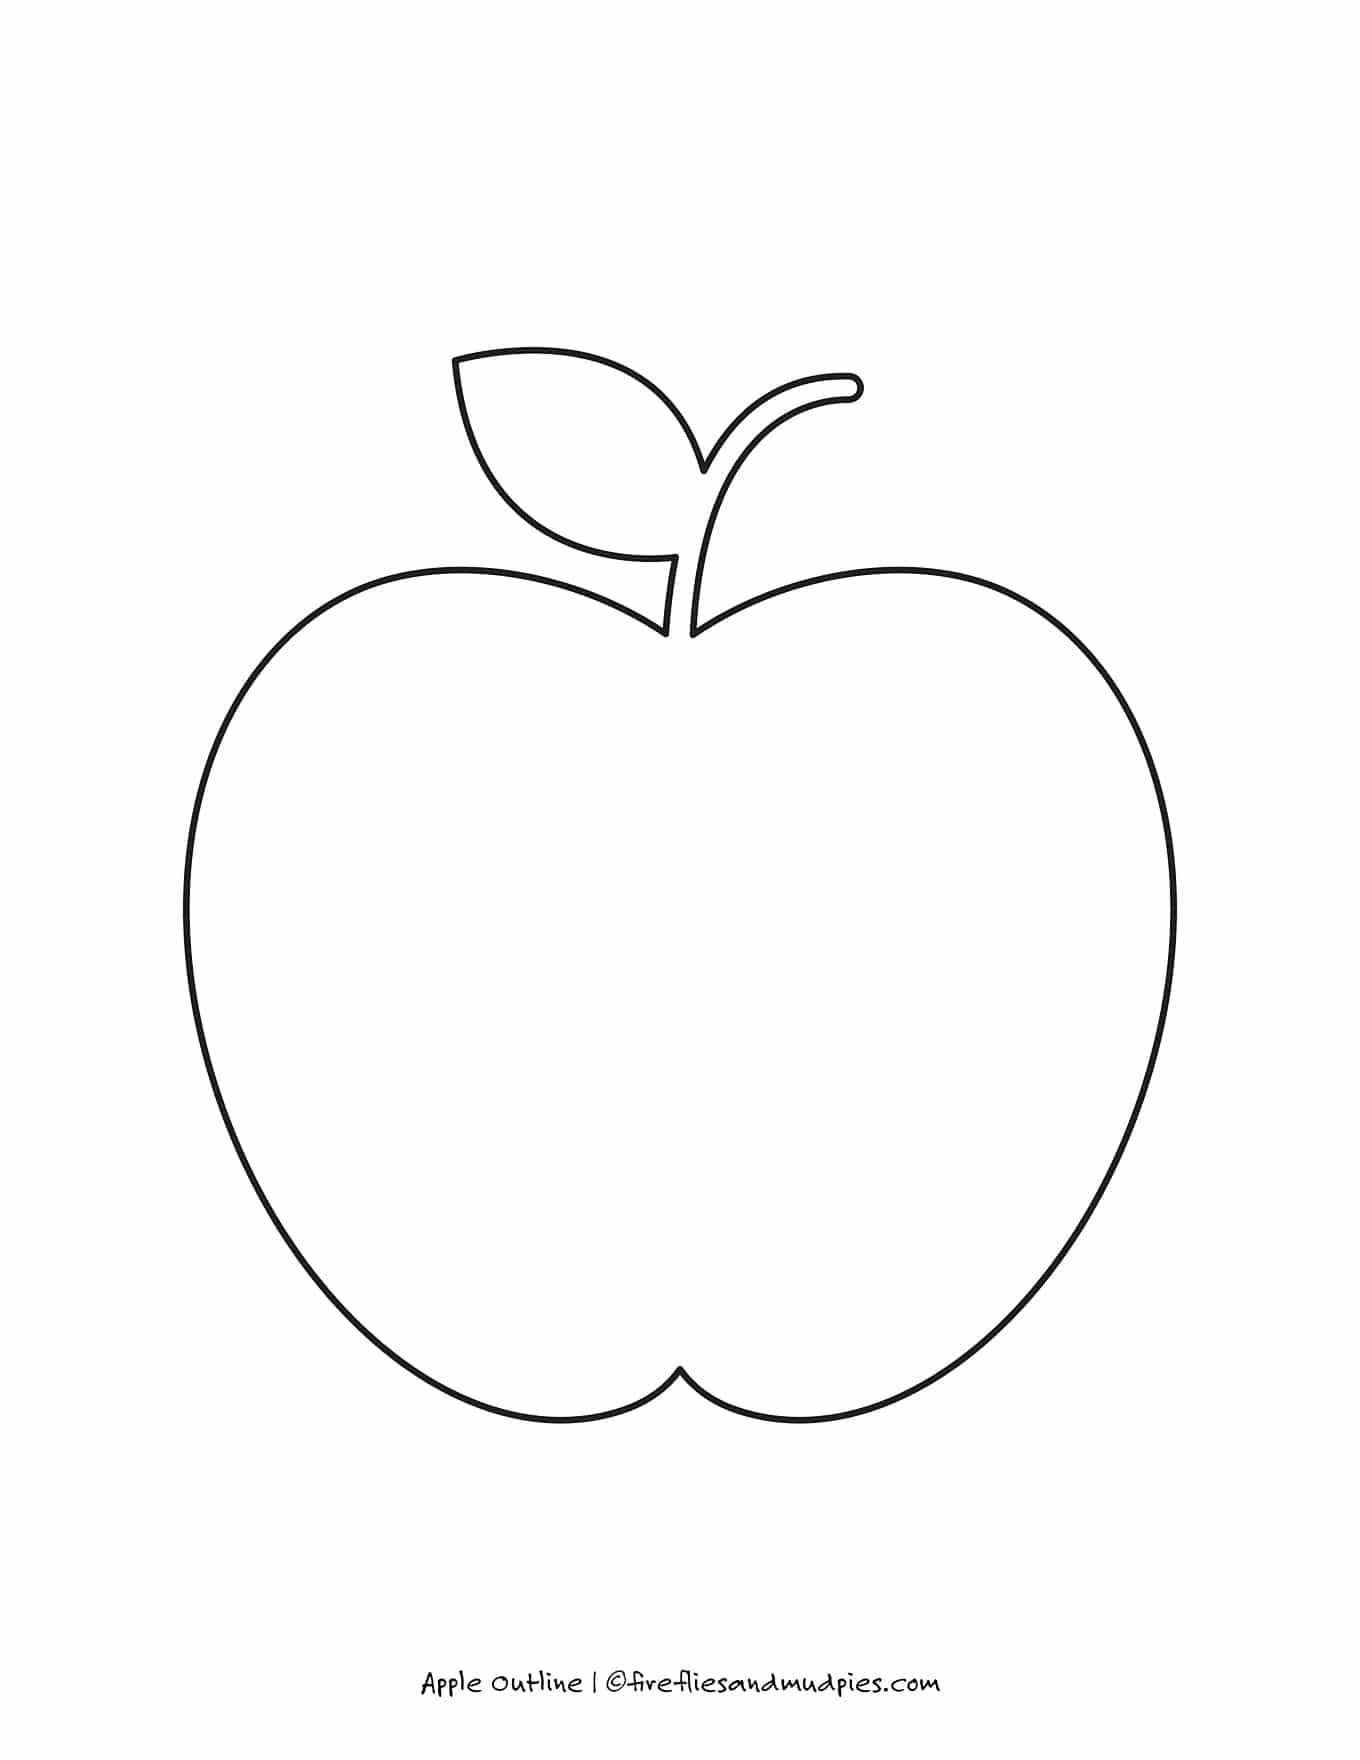 Free Printable Apple Outline For Crafts Apple Outline Apple Prints Apple Template